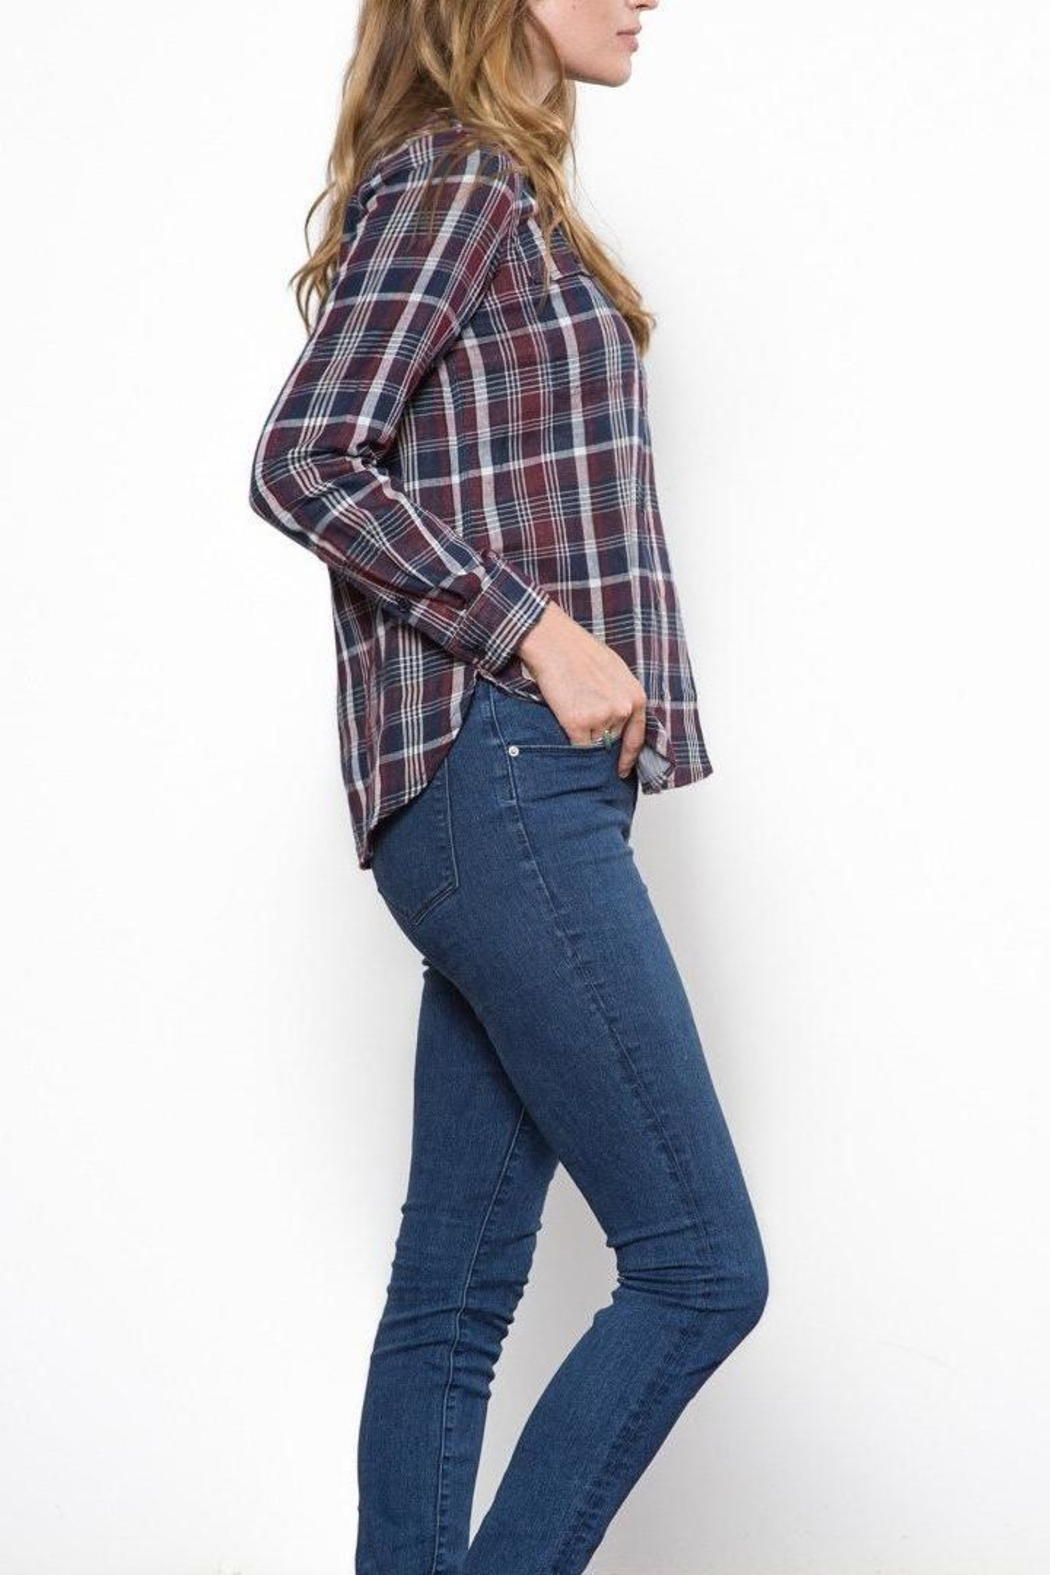 Capulet The Kaia Buttondown Top - Side Cropped Image